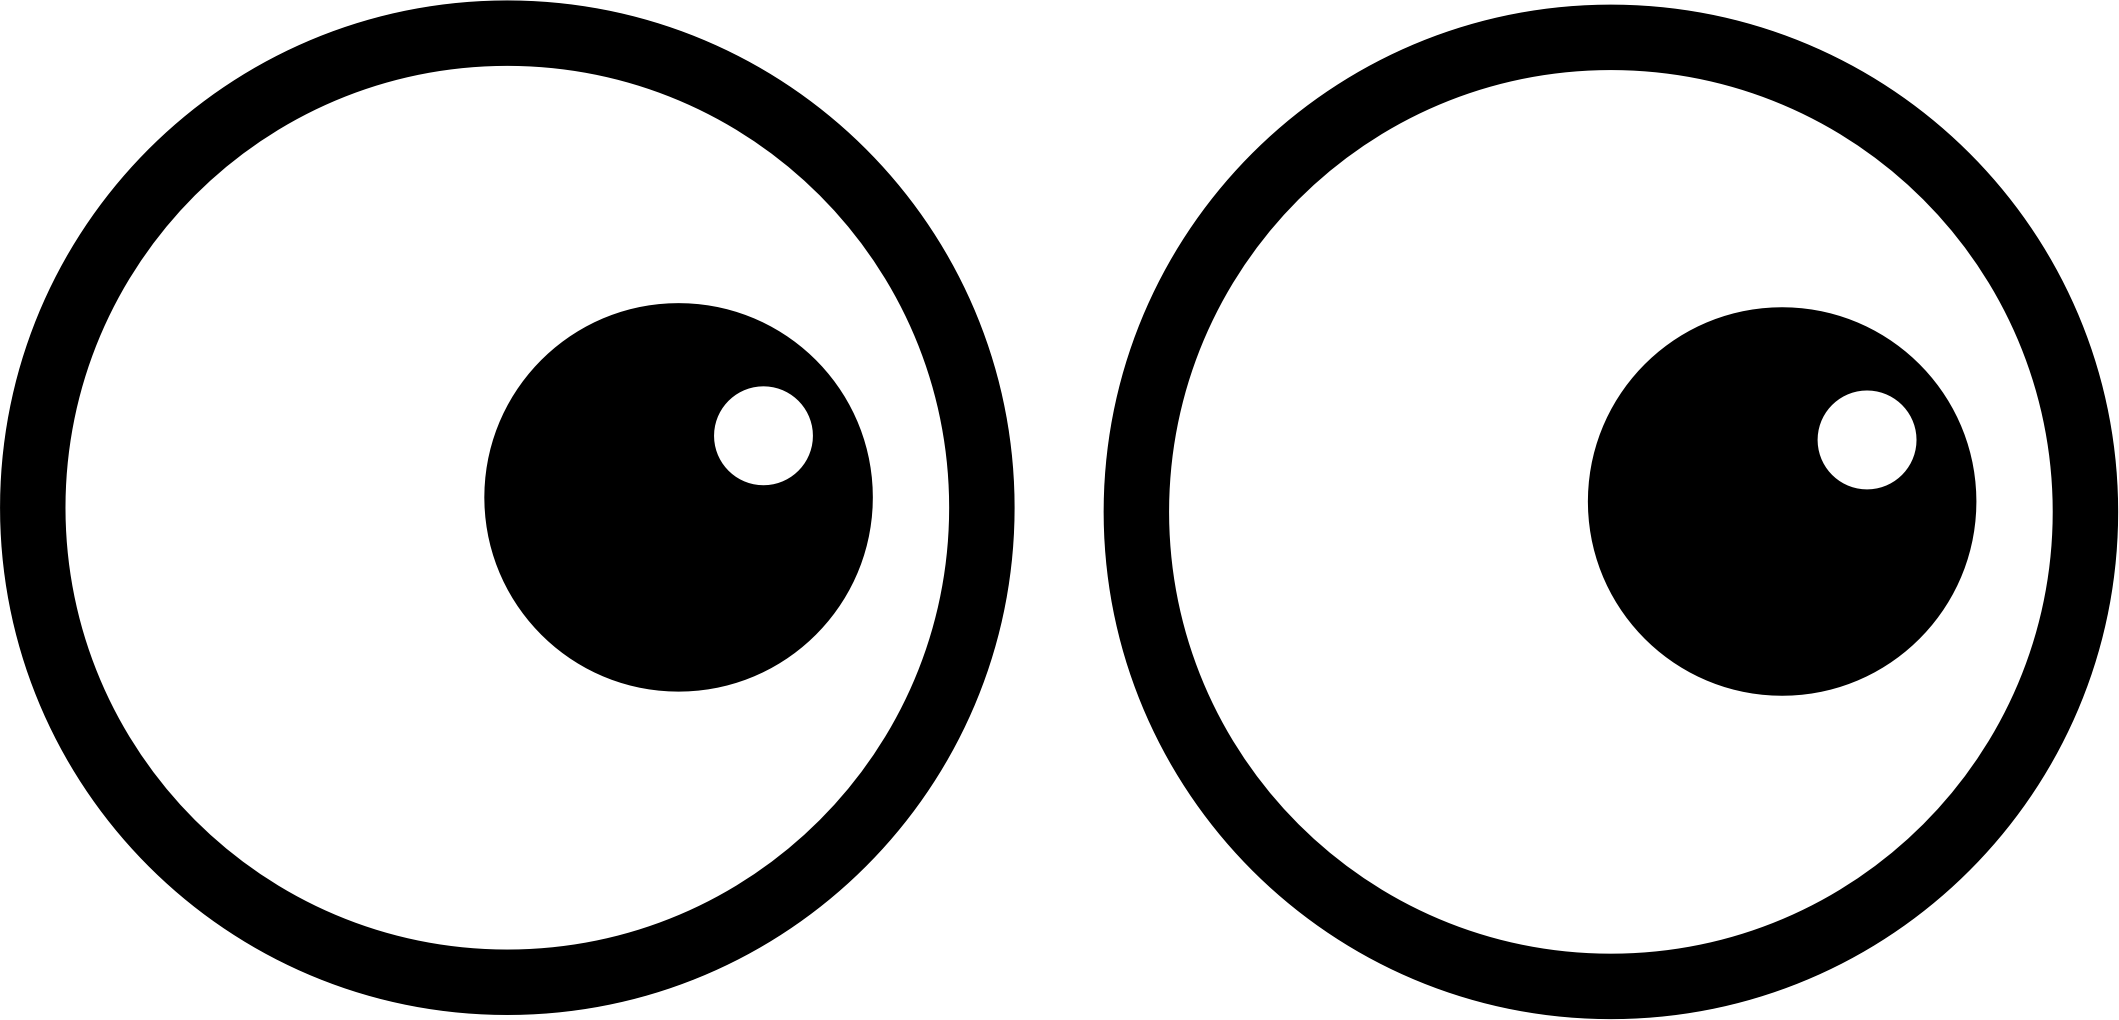 Png Eye Eye Cartoon Drawing Emoticon Png Image With